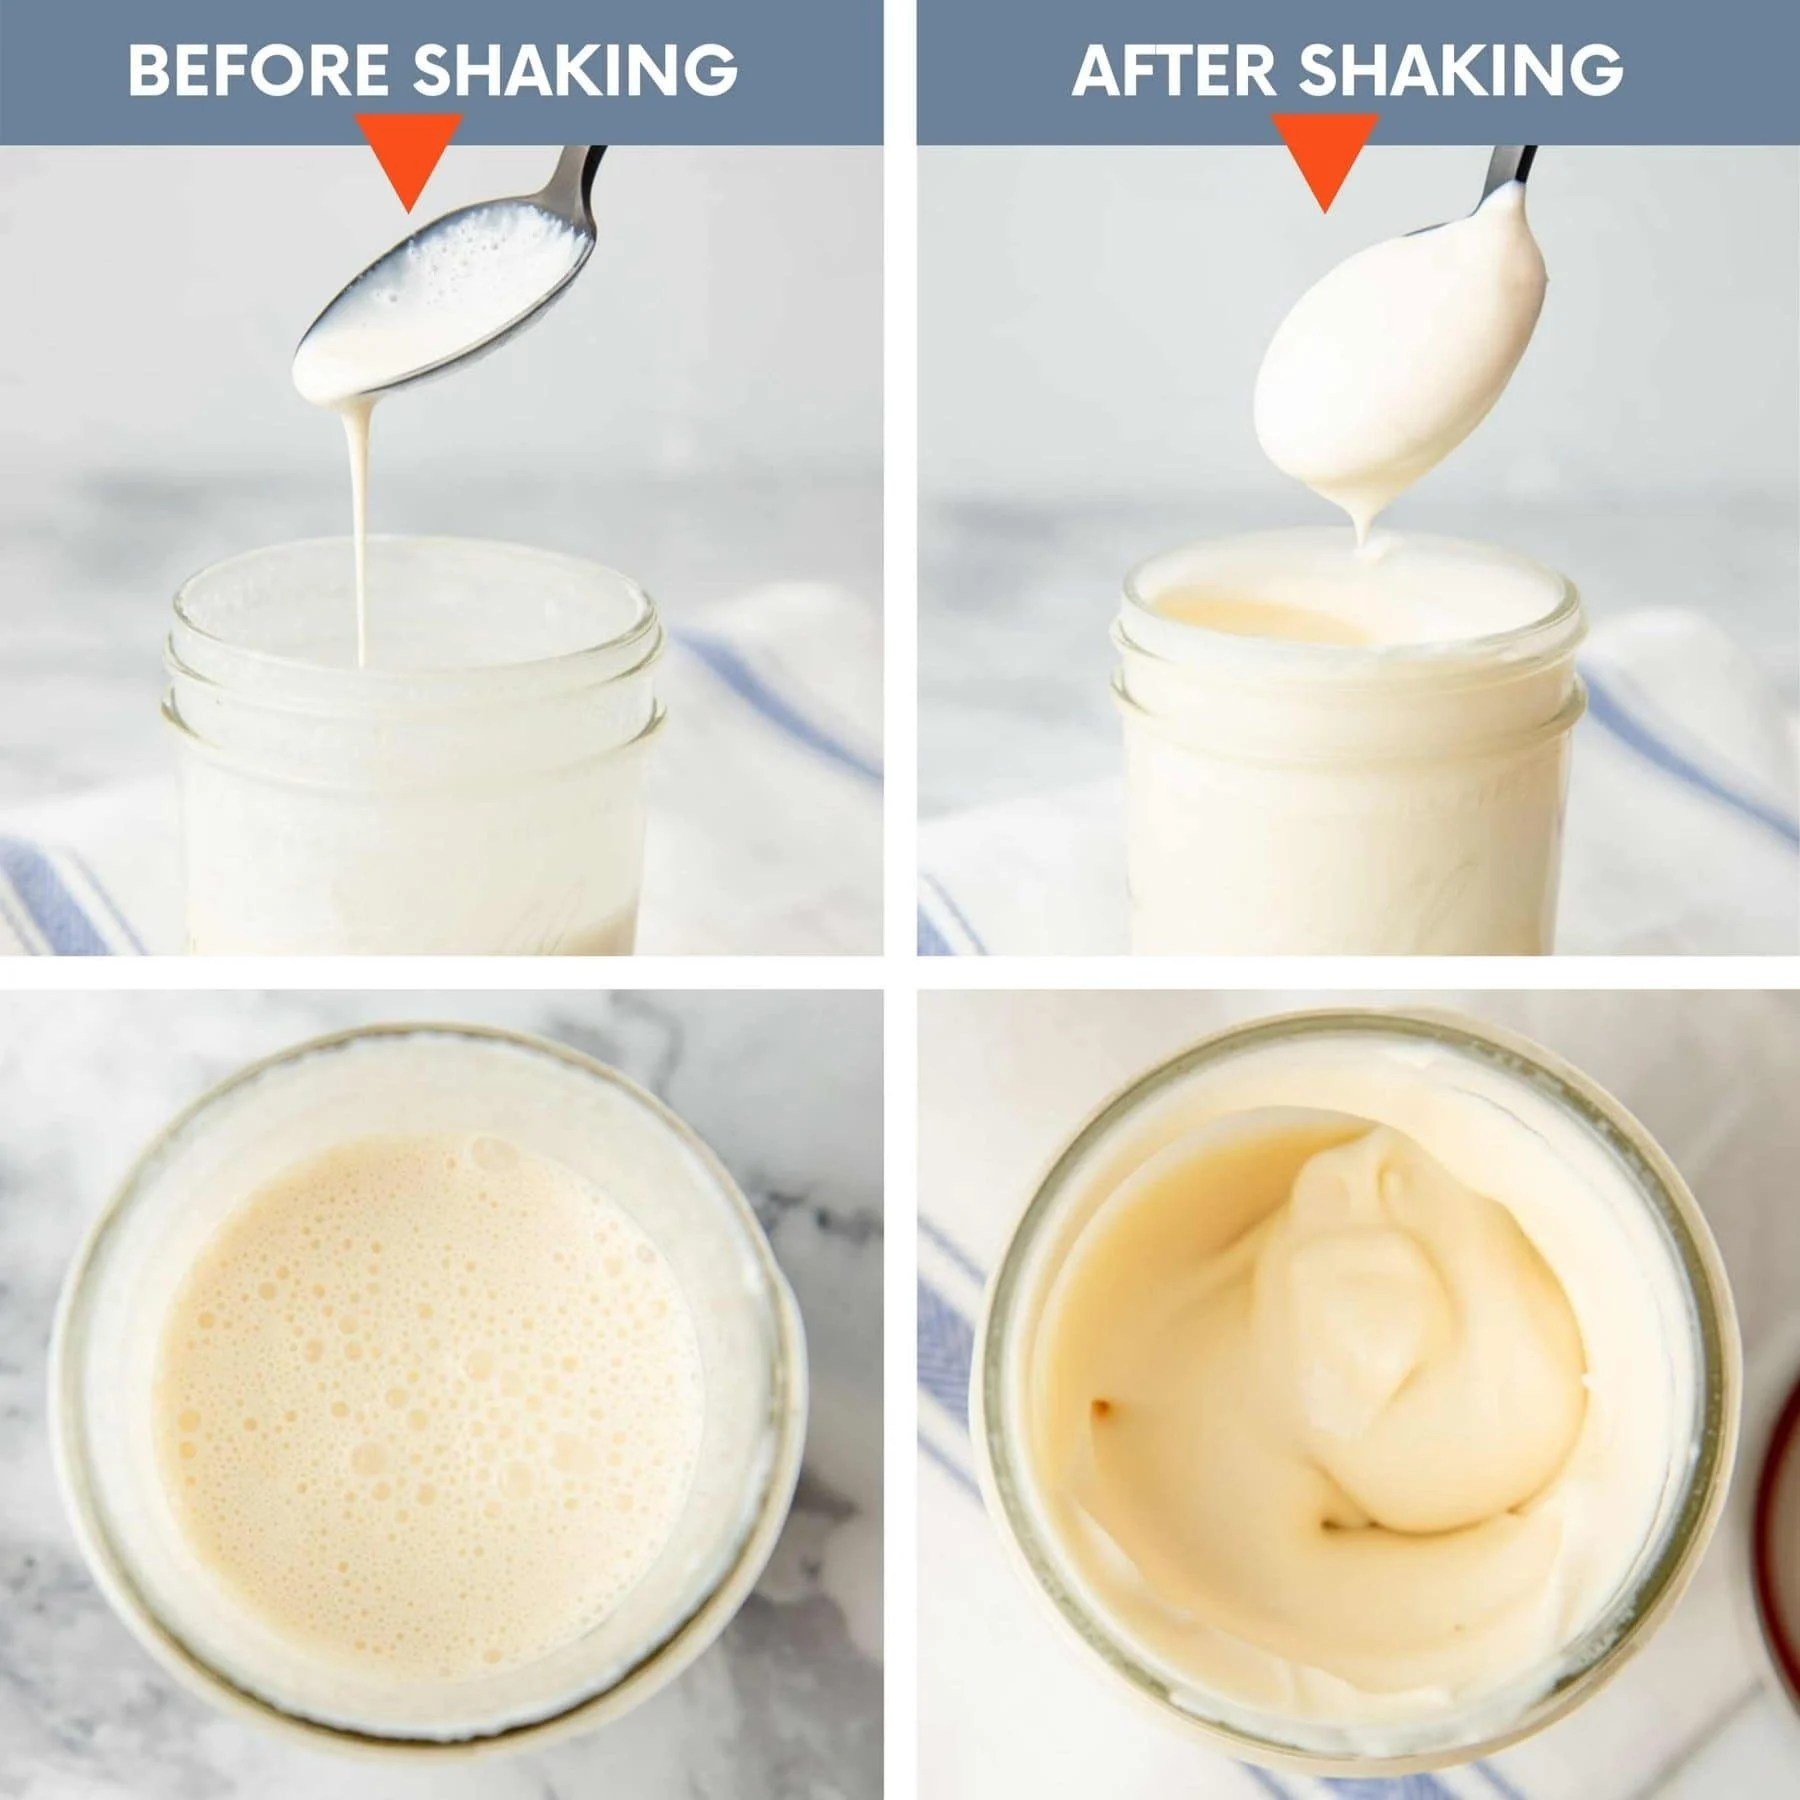 A split image shows what mason jar ice cream should look like before and after shaking.